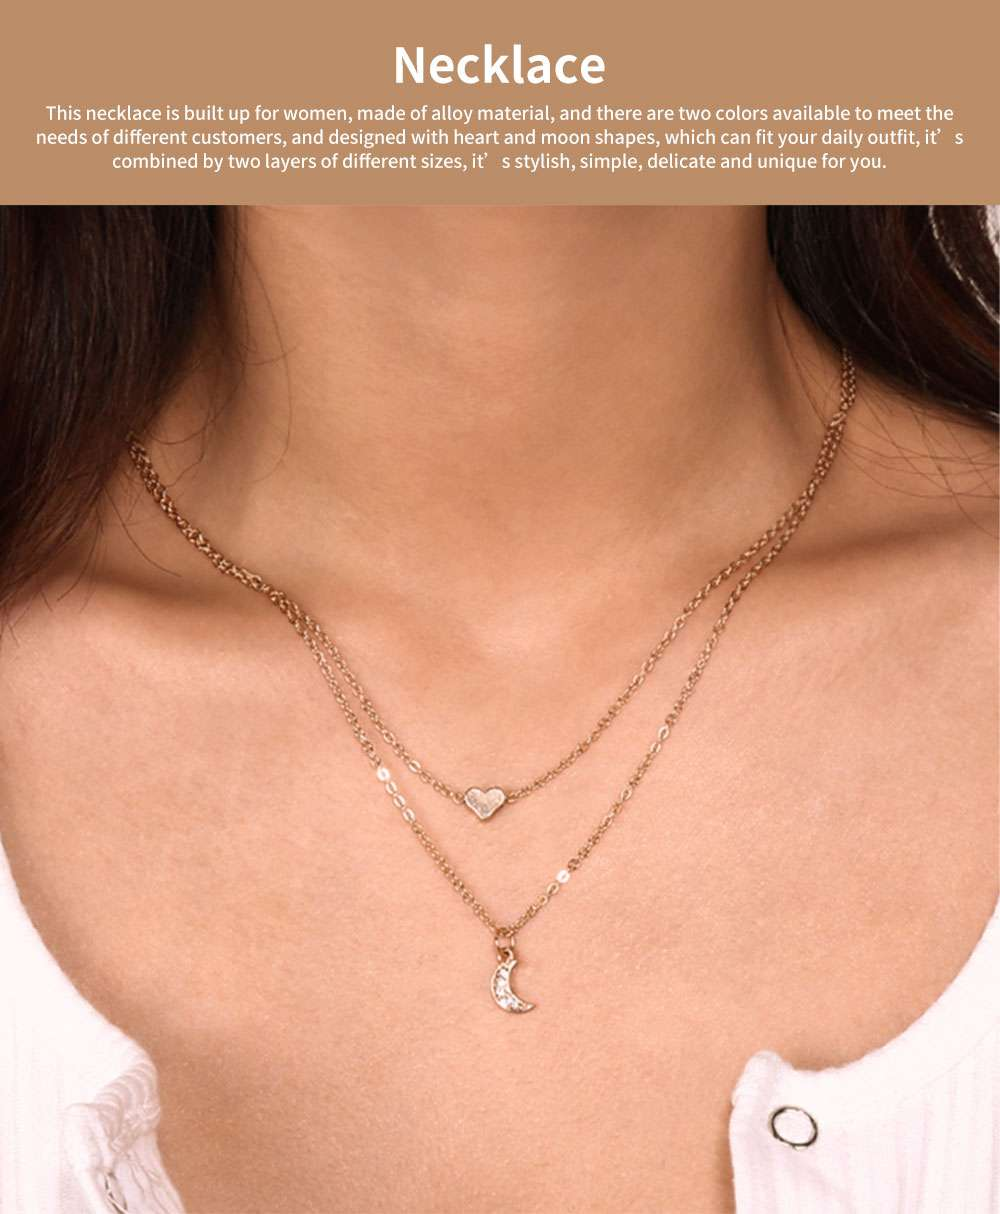 Female Necklace Alloy Neck-let Two Layers Moon Heart Shapes Torque Simple Ornament for Women 0